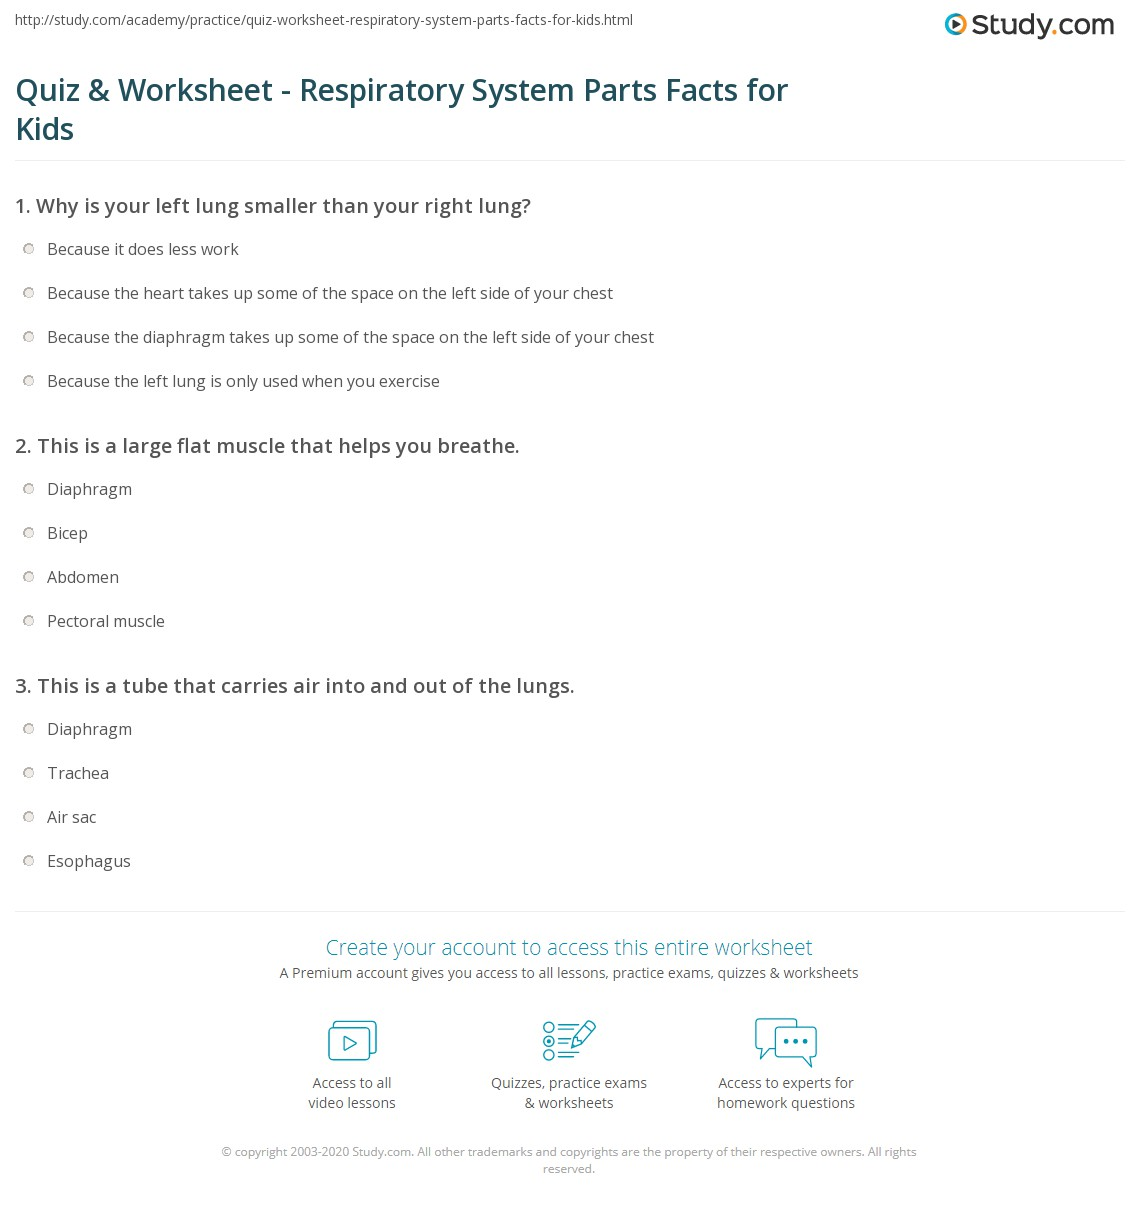 Quiz worksheet respiratory system parts facts for kids study print parts of the respiratory system lesson for kids worksheet ccuart Images